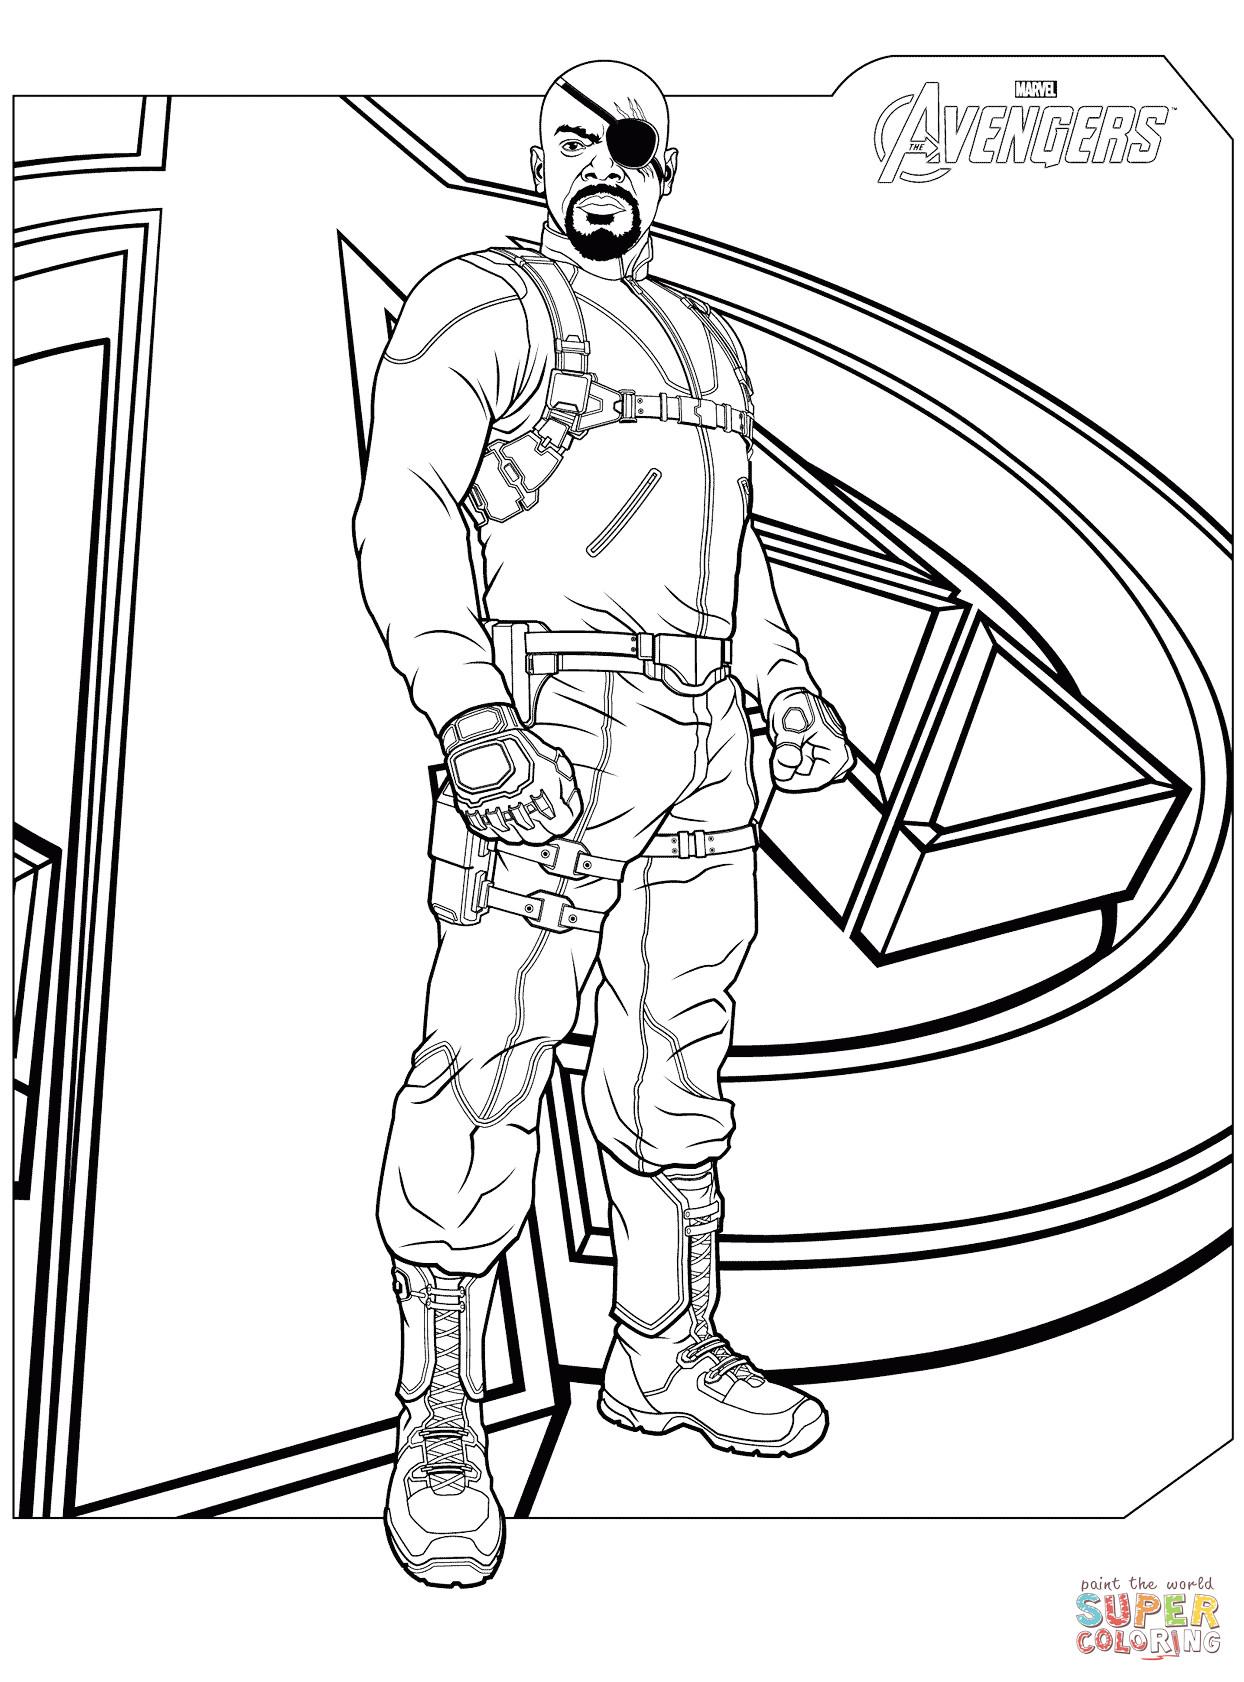 Coloring Pages Avengers  Avengers Nick Fury coloring page